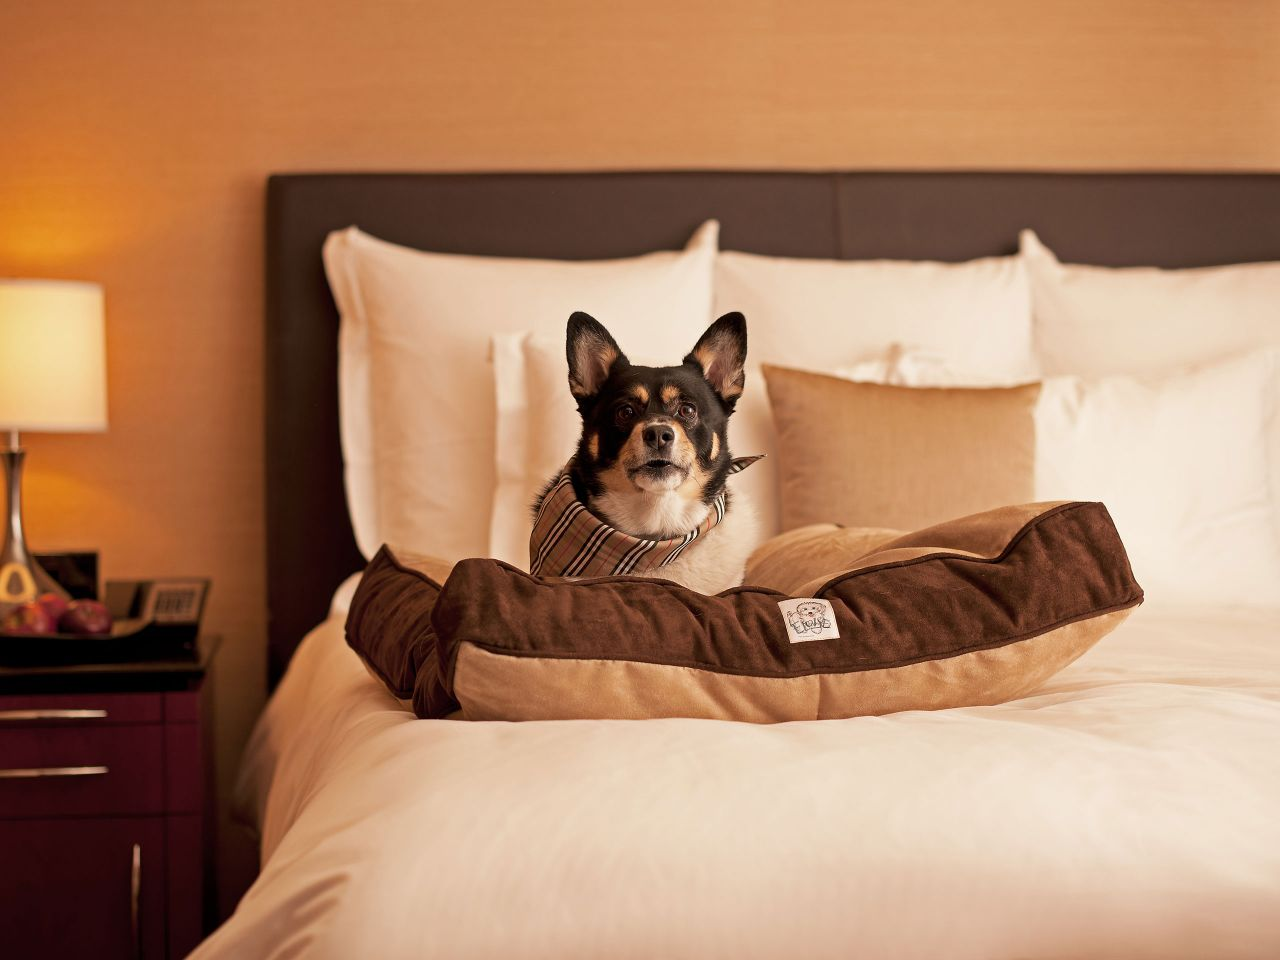 Hyatt Regency Grand Cypress Dog on Bed